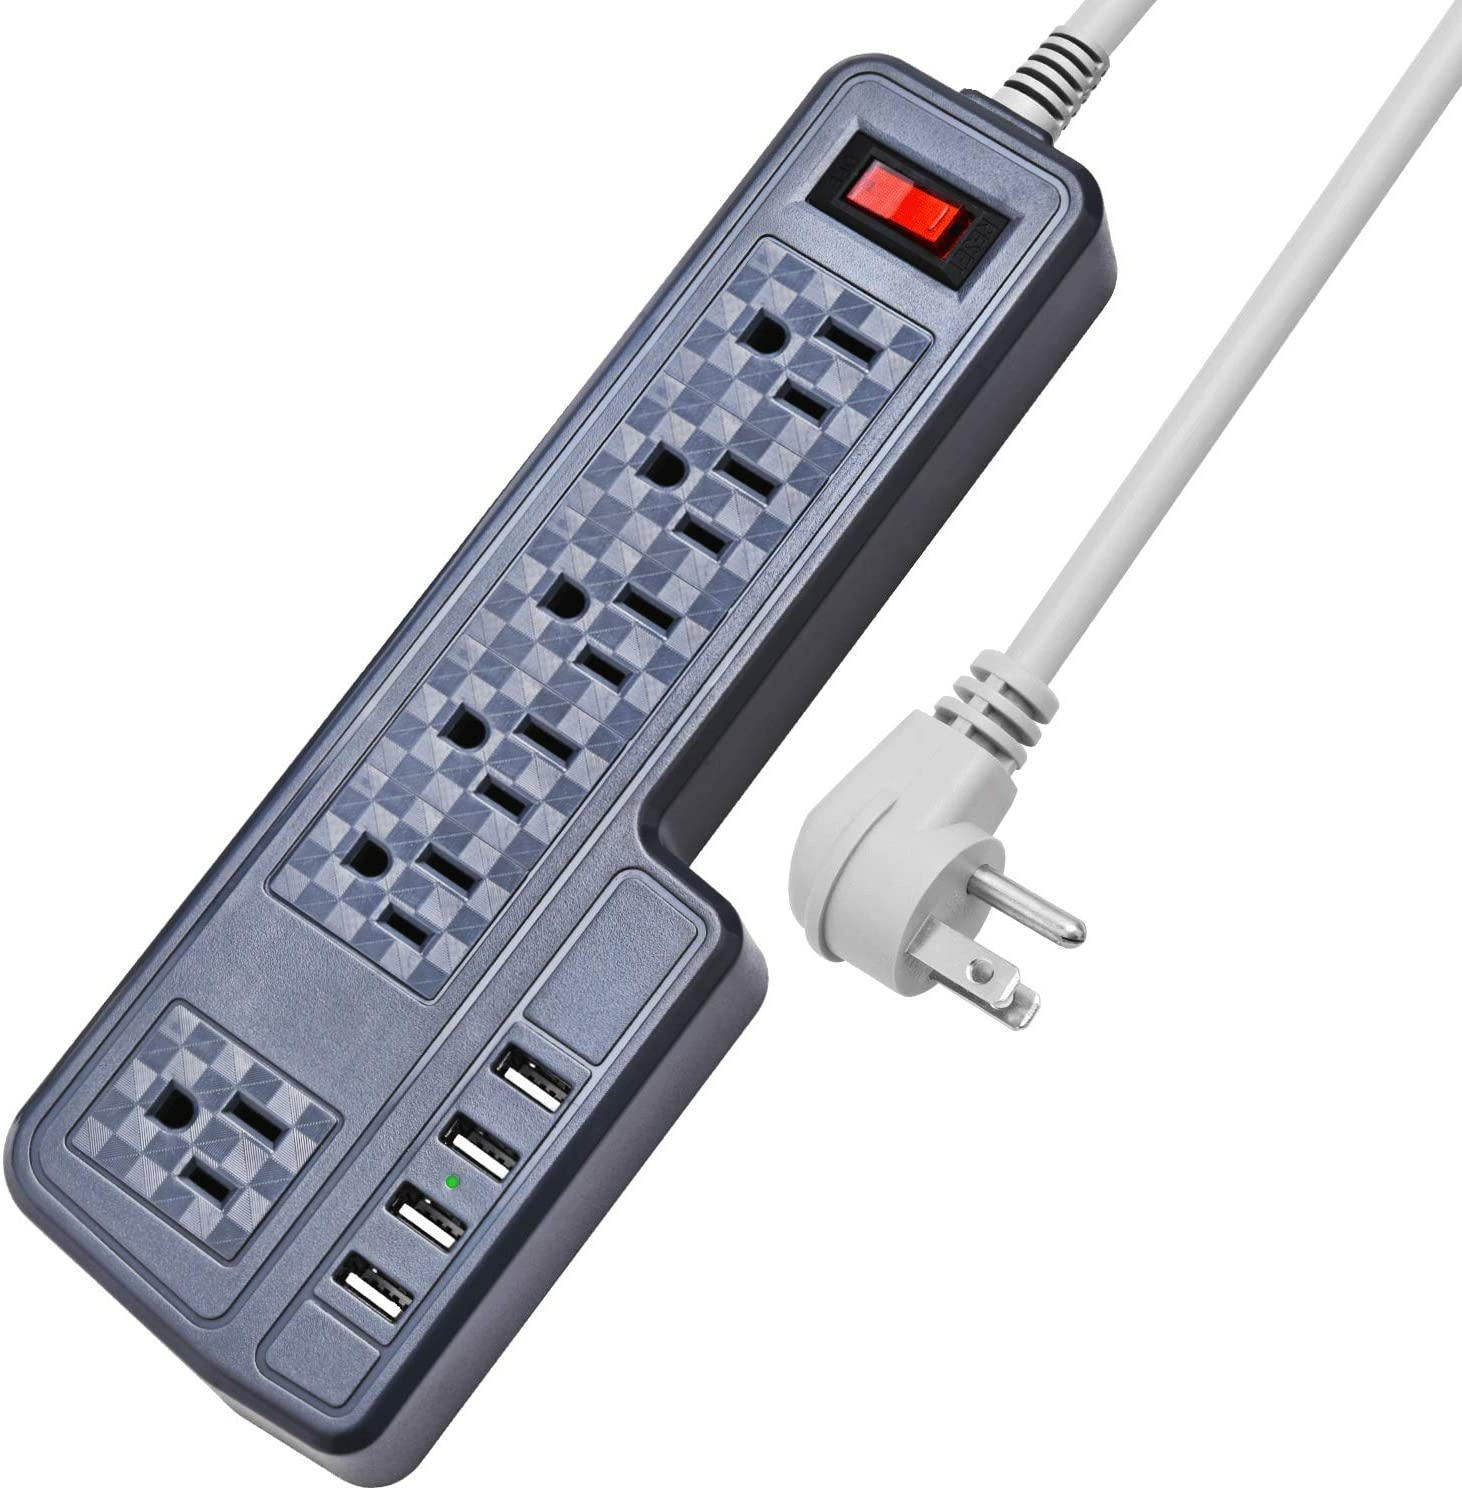 Mountable Surge Protector Power Strip JACKYLED 9.8ft 6 Outlets 4 USB Ports Electric Power Outlet with Right Angle Flat Plug Electric Long Extension Cord Power Charging Station for Home Office Gray